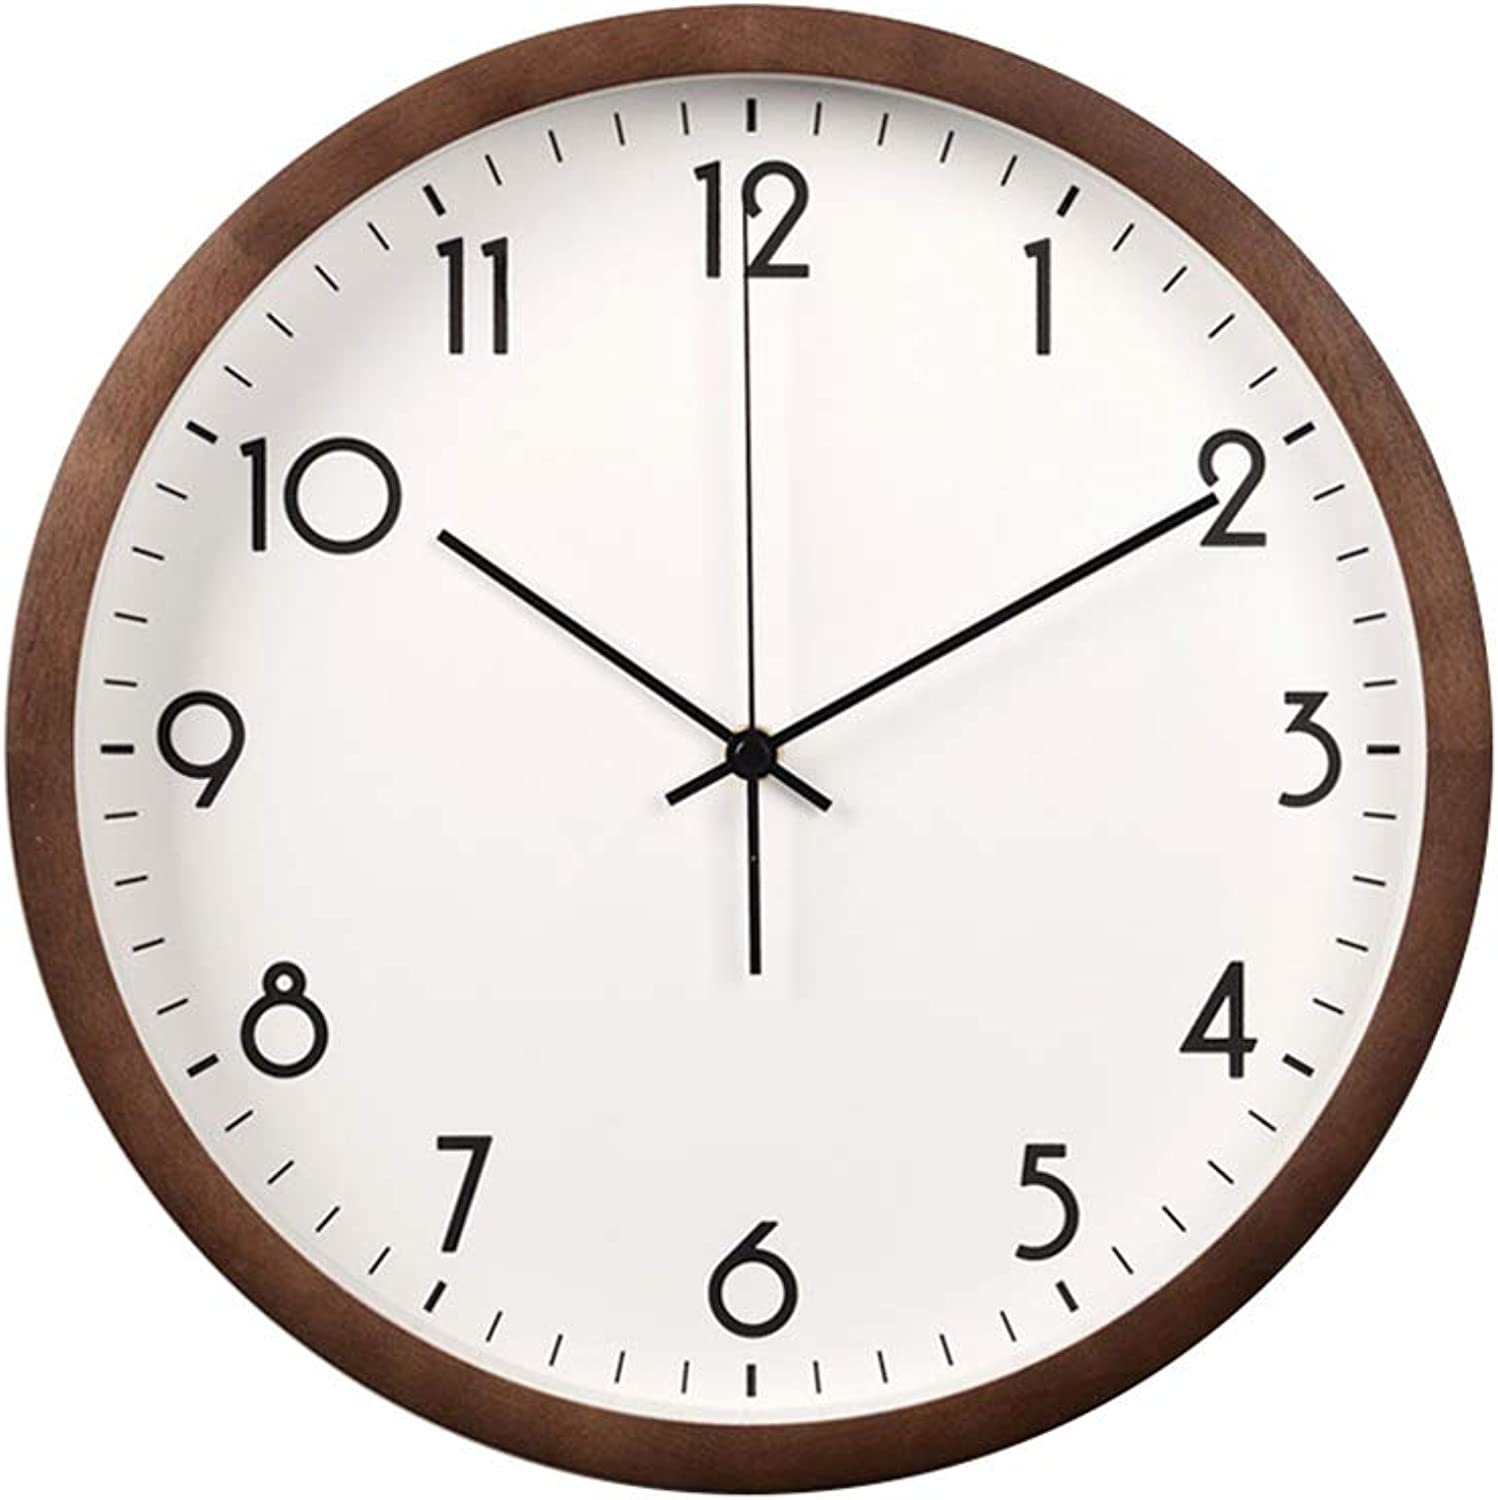 Creative Wall Clock Living Room Home Hanging Table Solid Wood Wall Clock no Printed Wave Wall Clock Silent Quartz Clock Bedroom Personality Clock (color   Brown, Size   30.5cm(12in))